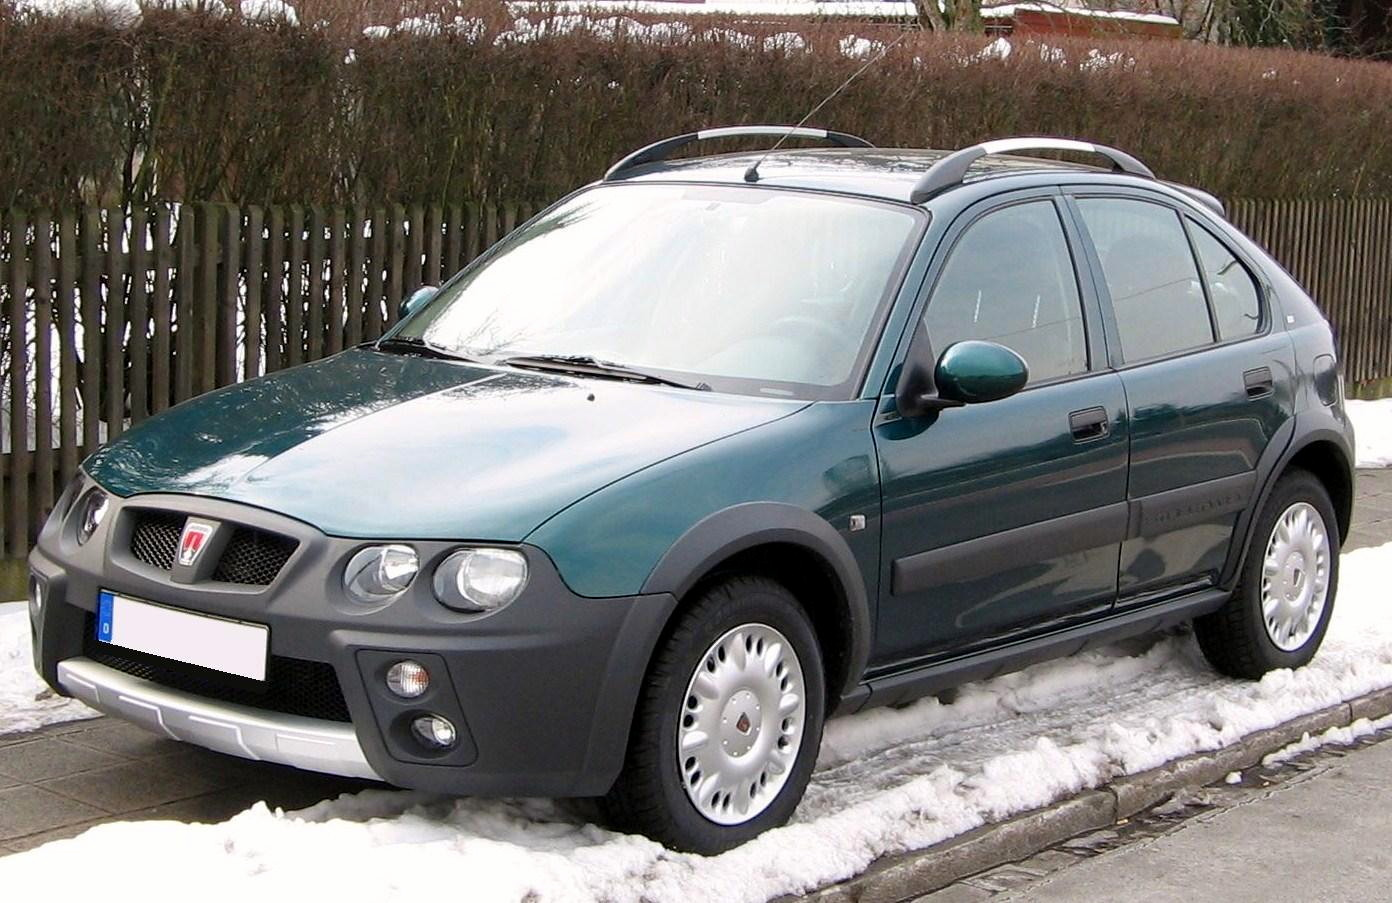 2008 Rover Streetwise #3